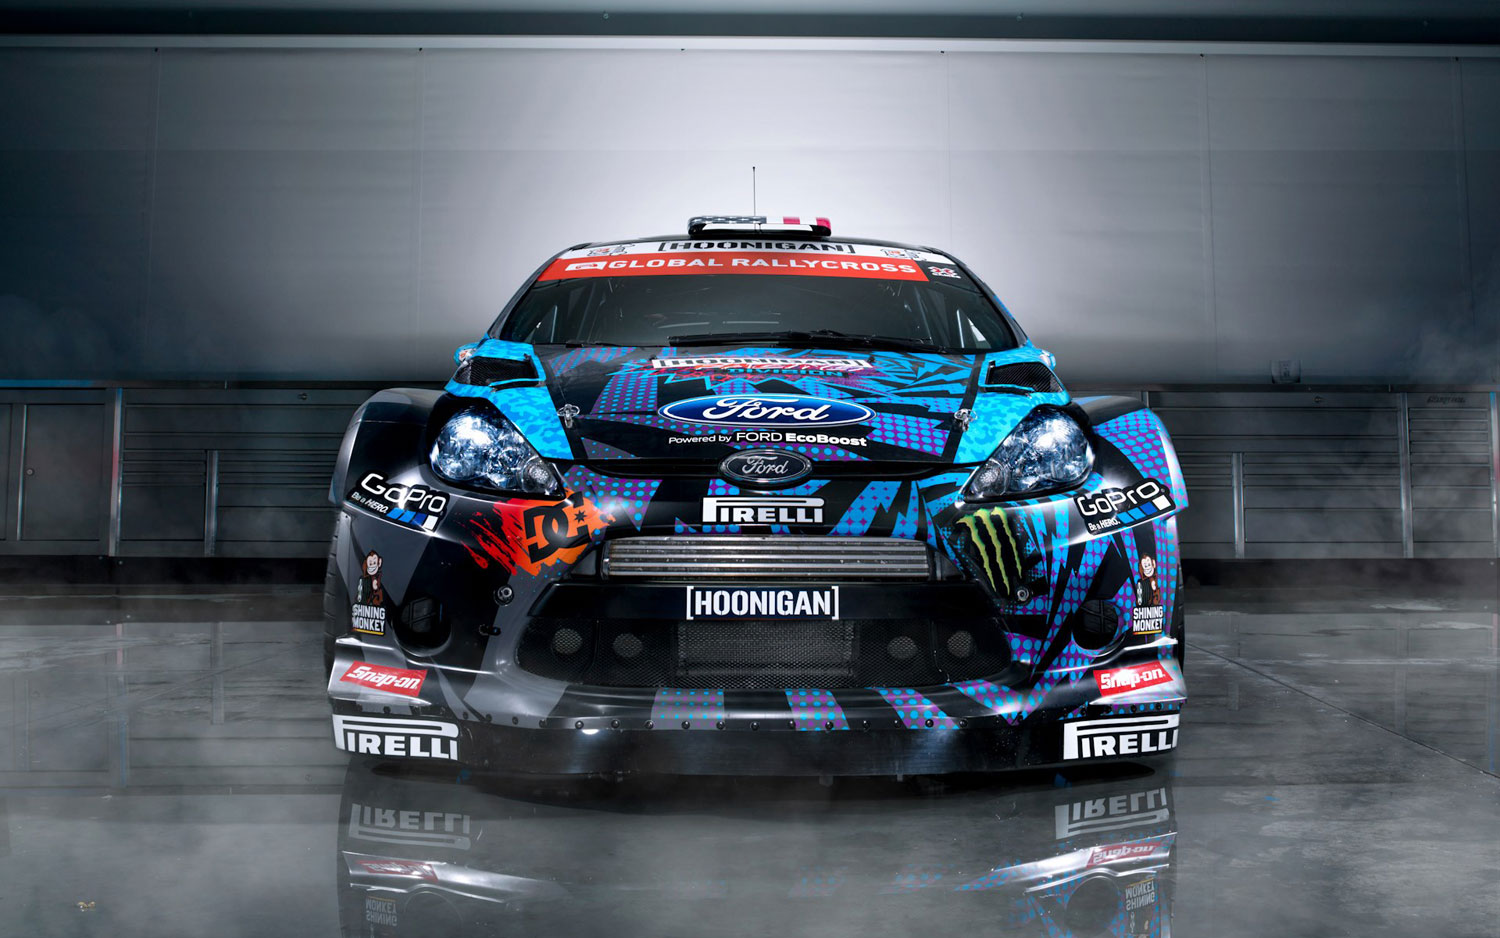 Wallpapers Ken Block Wallpaper  1500x938